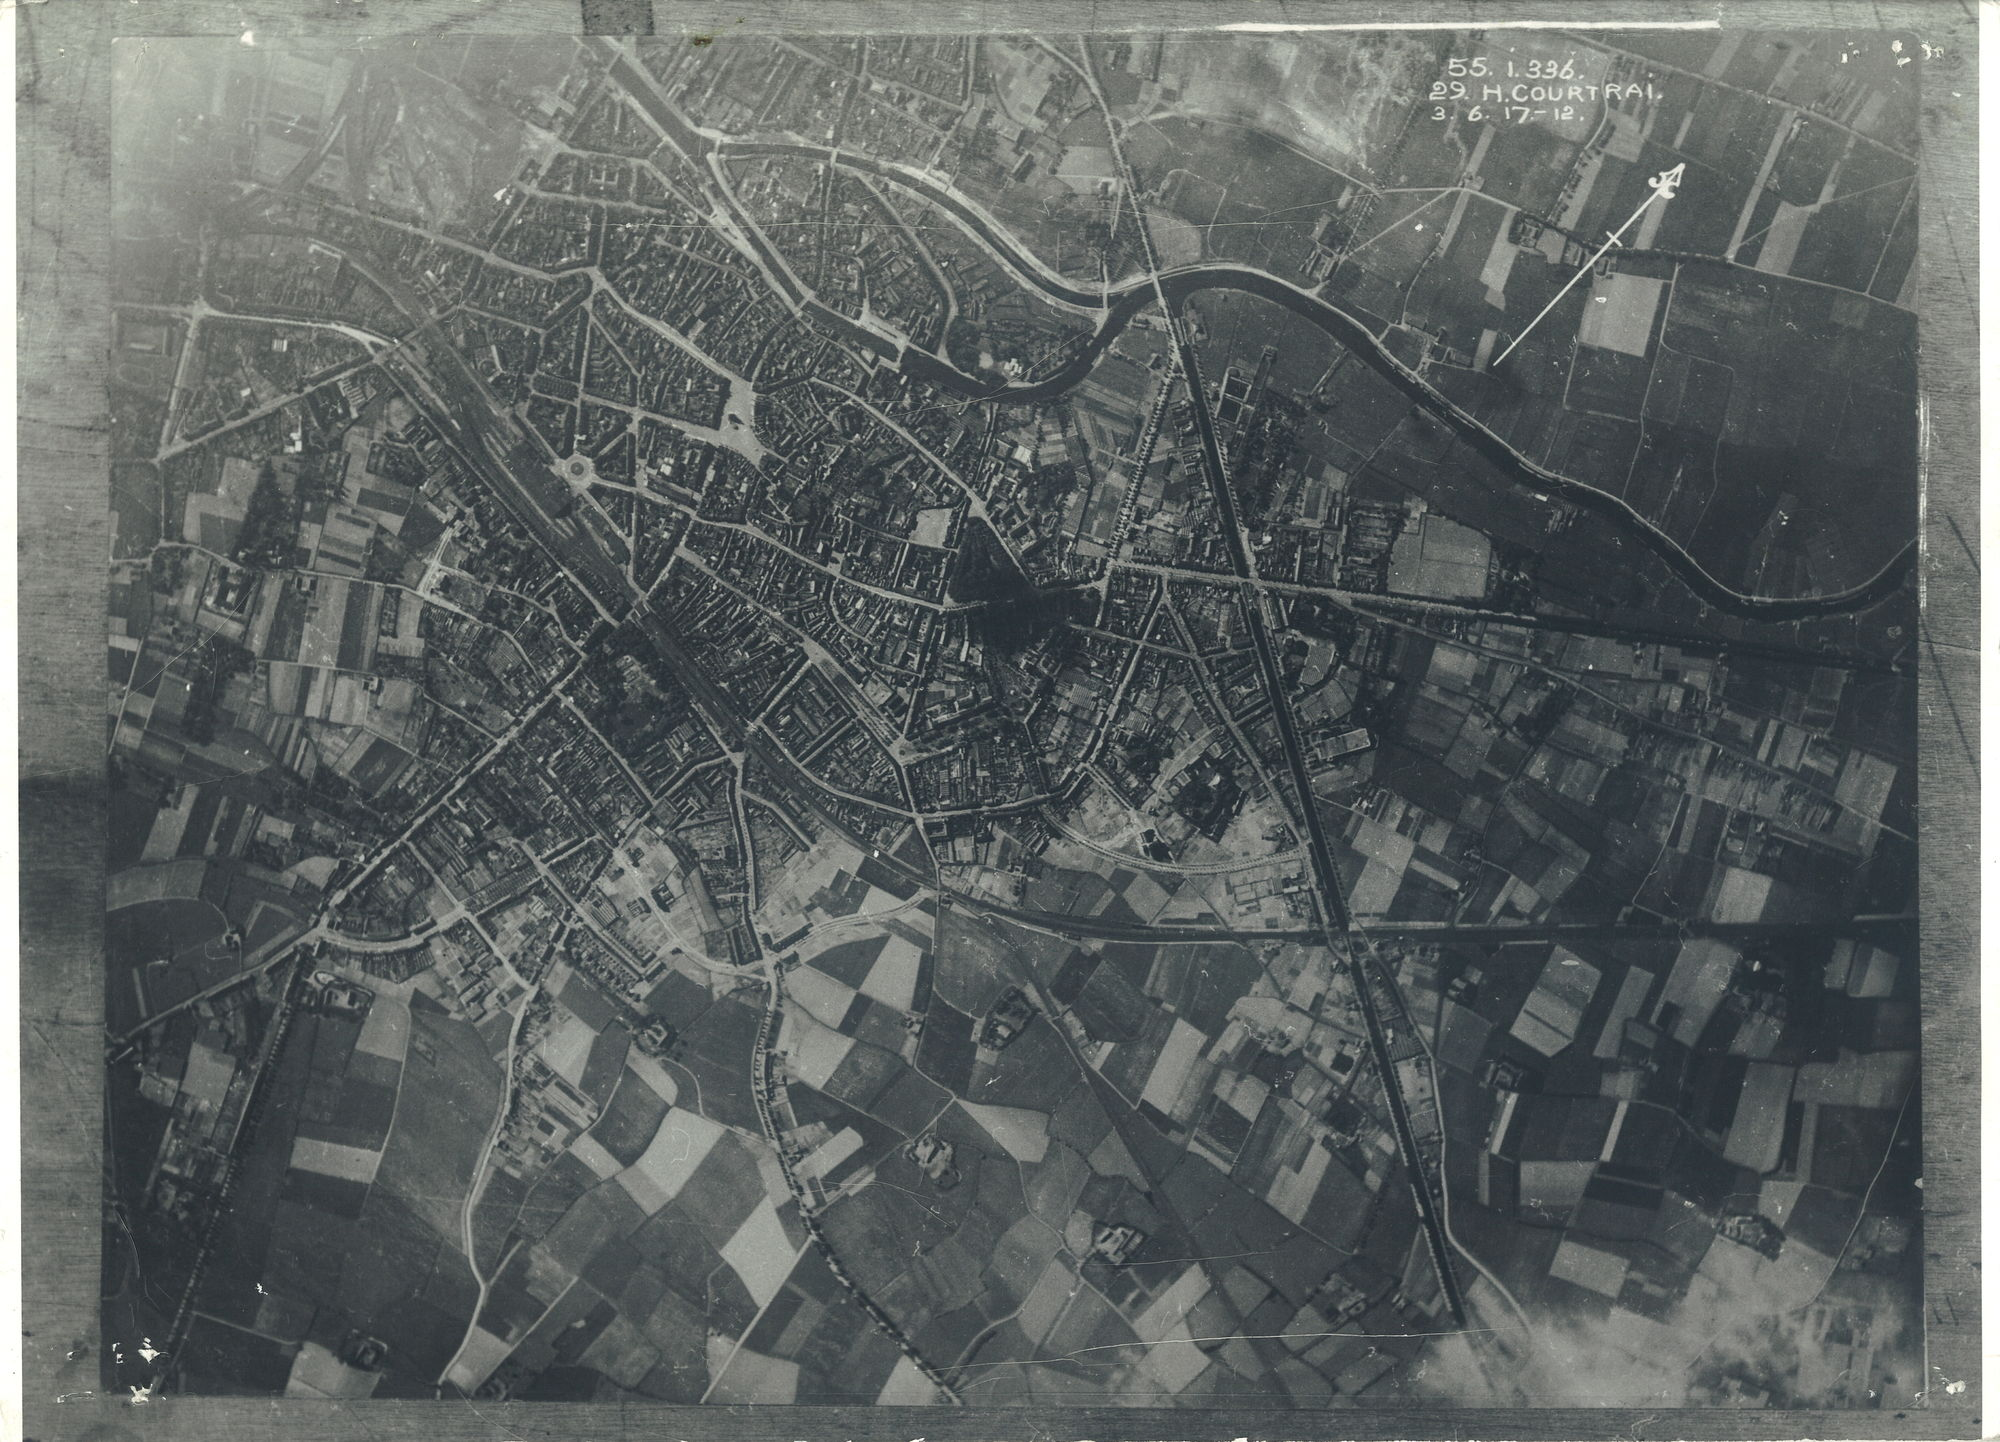 Luchtfoto in 1917